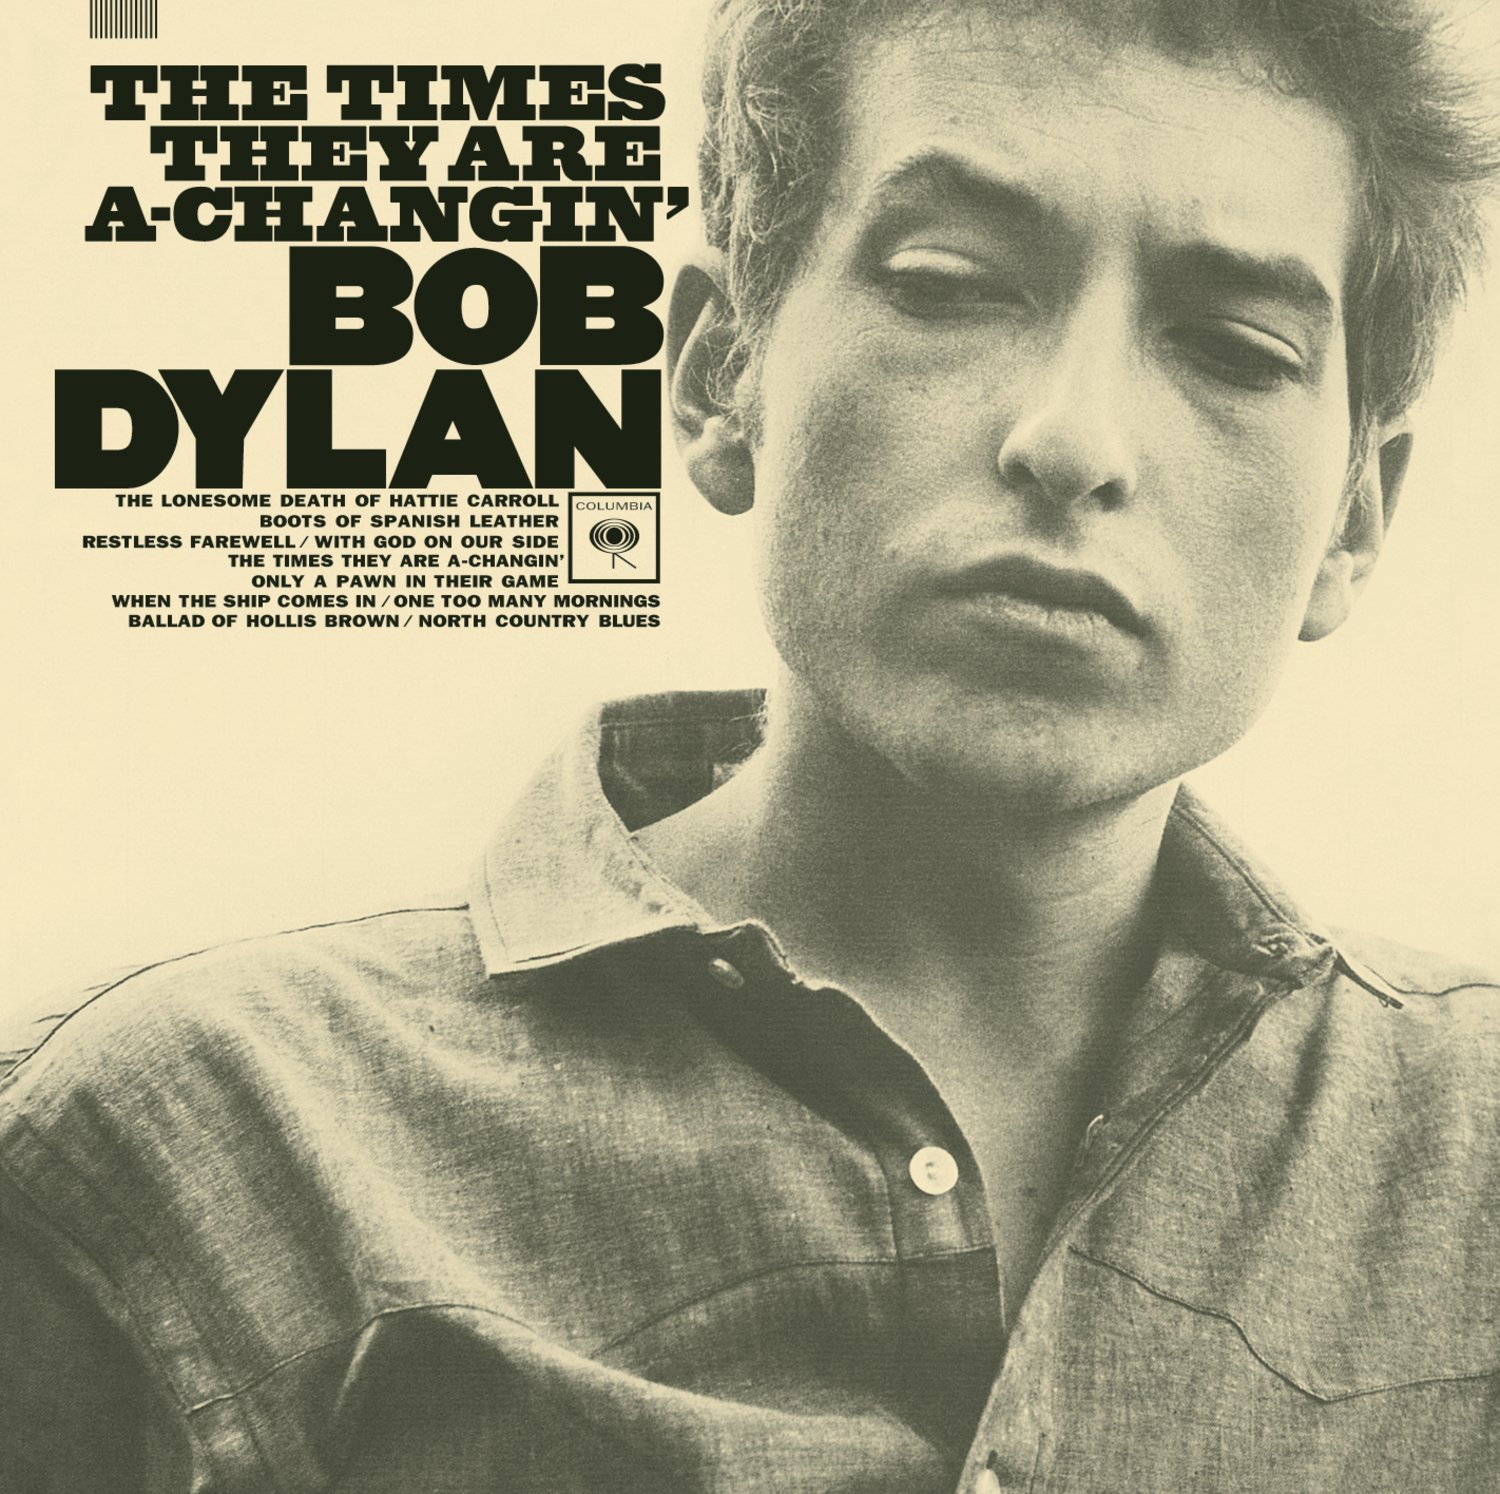 Bob Dylan - The times they are a changin (1964)